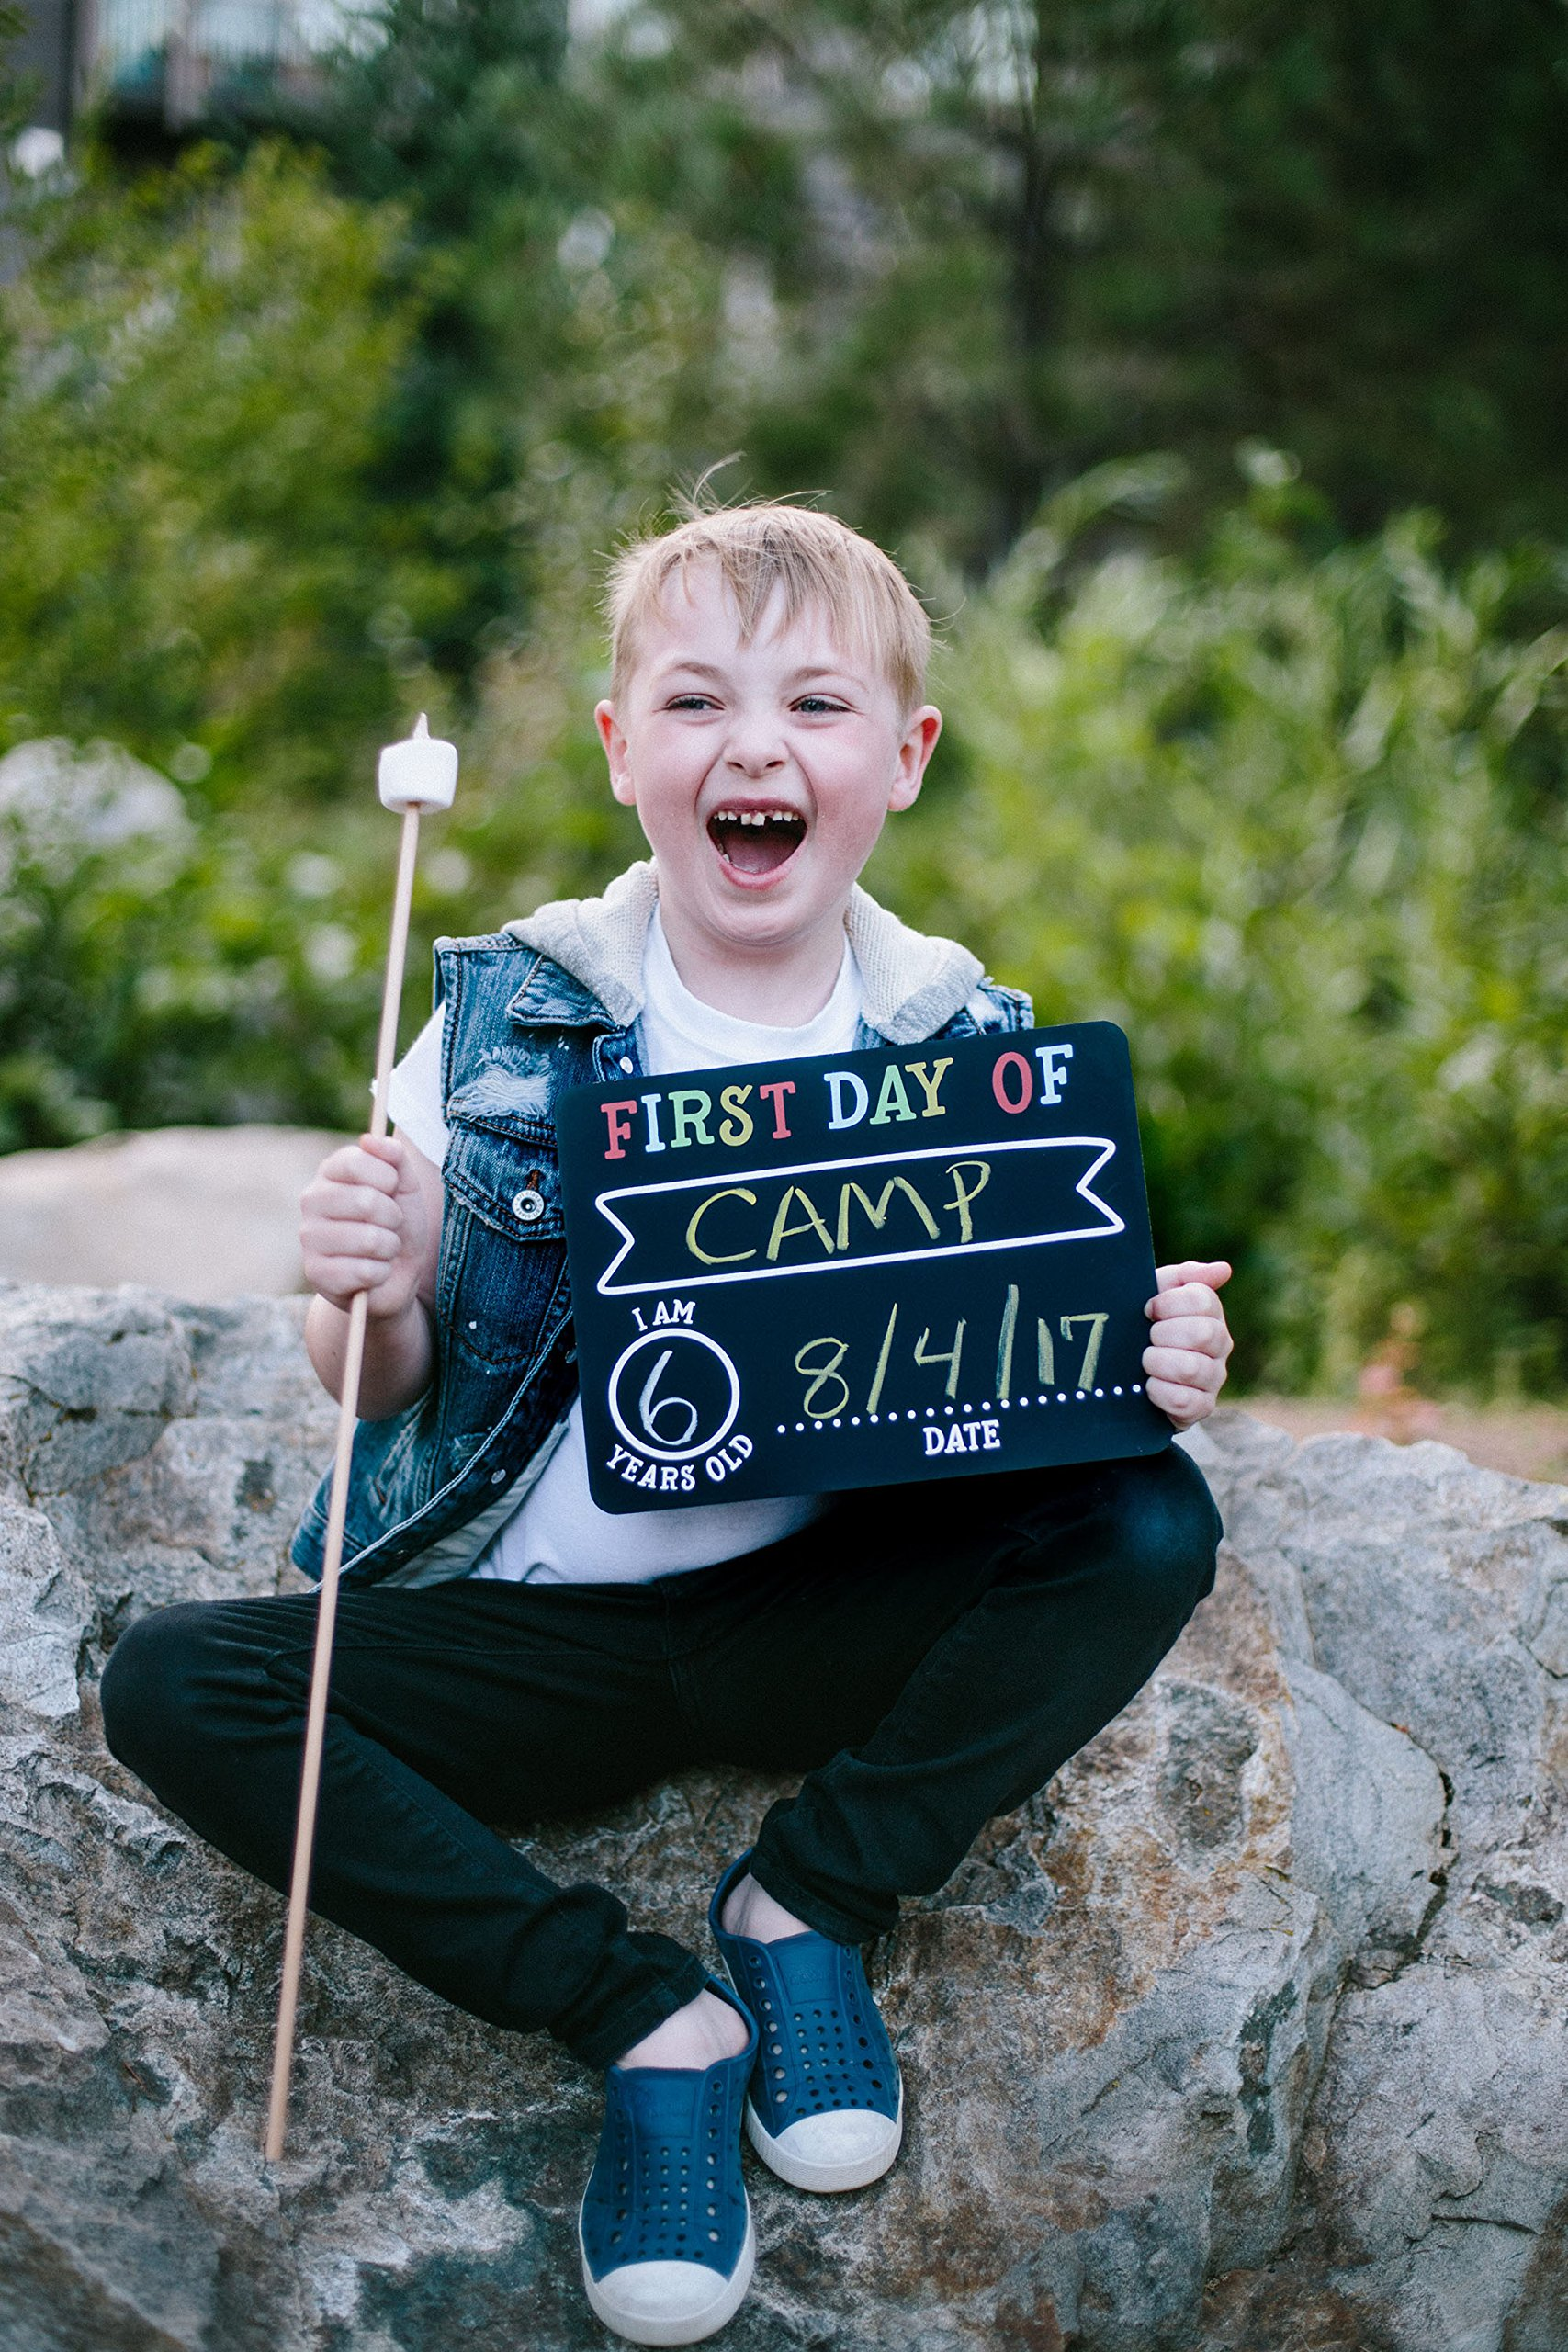 Pearhead First and Last Day of School Photo Sharing Chalkboard Signs; The Perfect Back to School Chalkboard Sign to Commemorate The First Day of School, Set of 2 by Pearhead (Image #7)